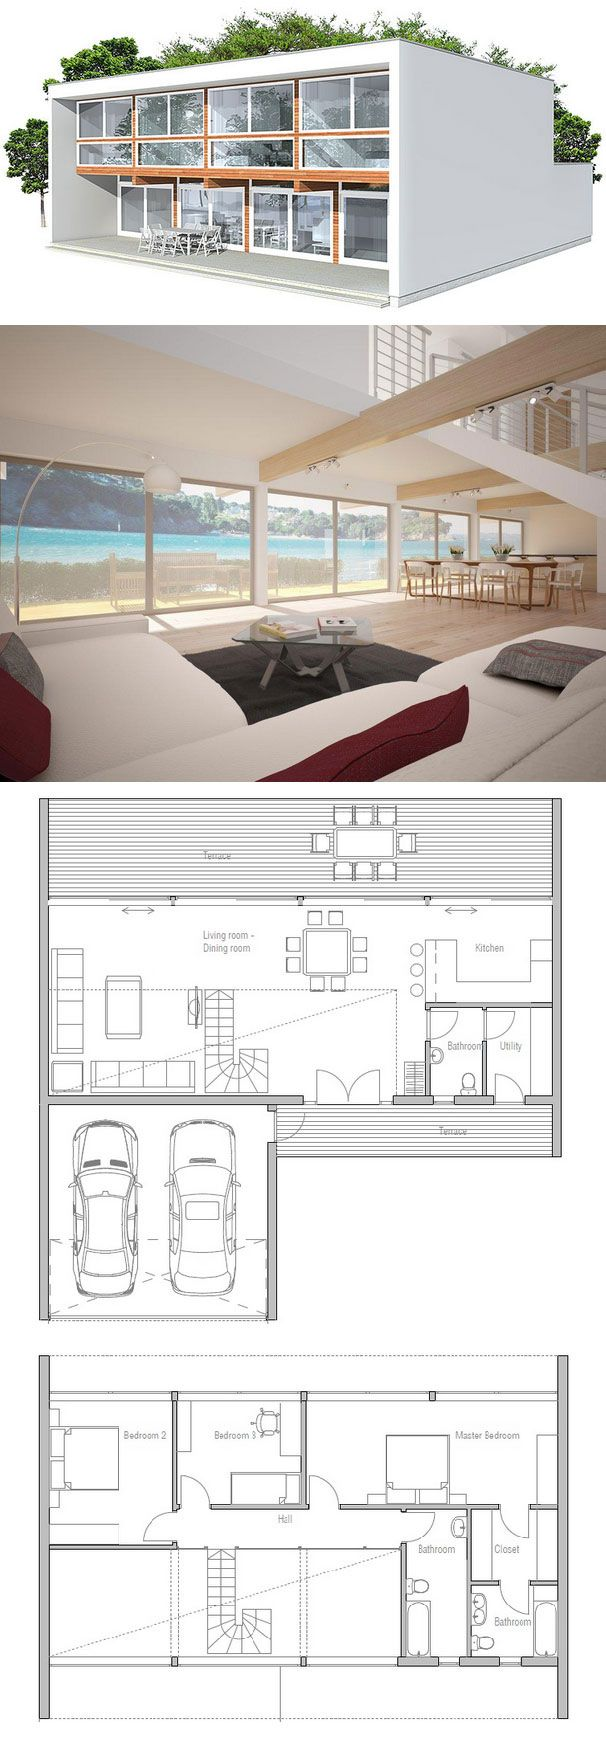 1000 images about floor plans on pinterest tiny home plans